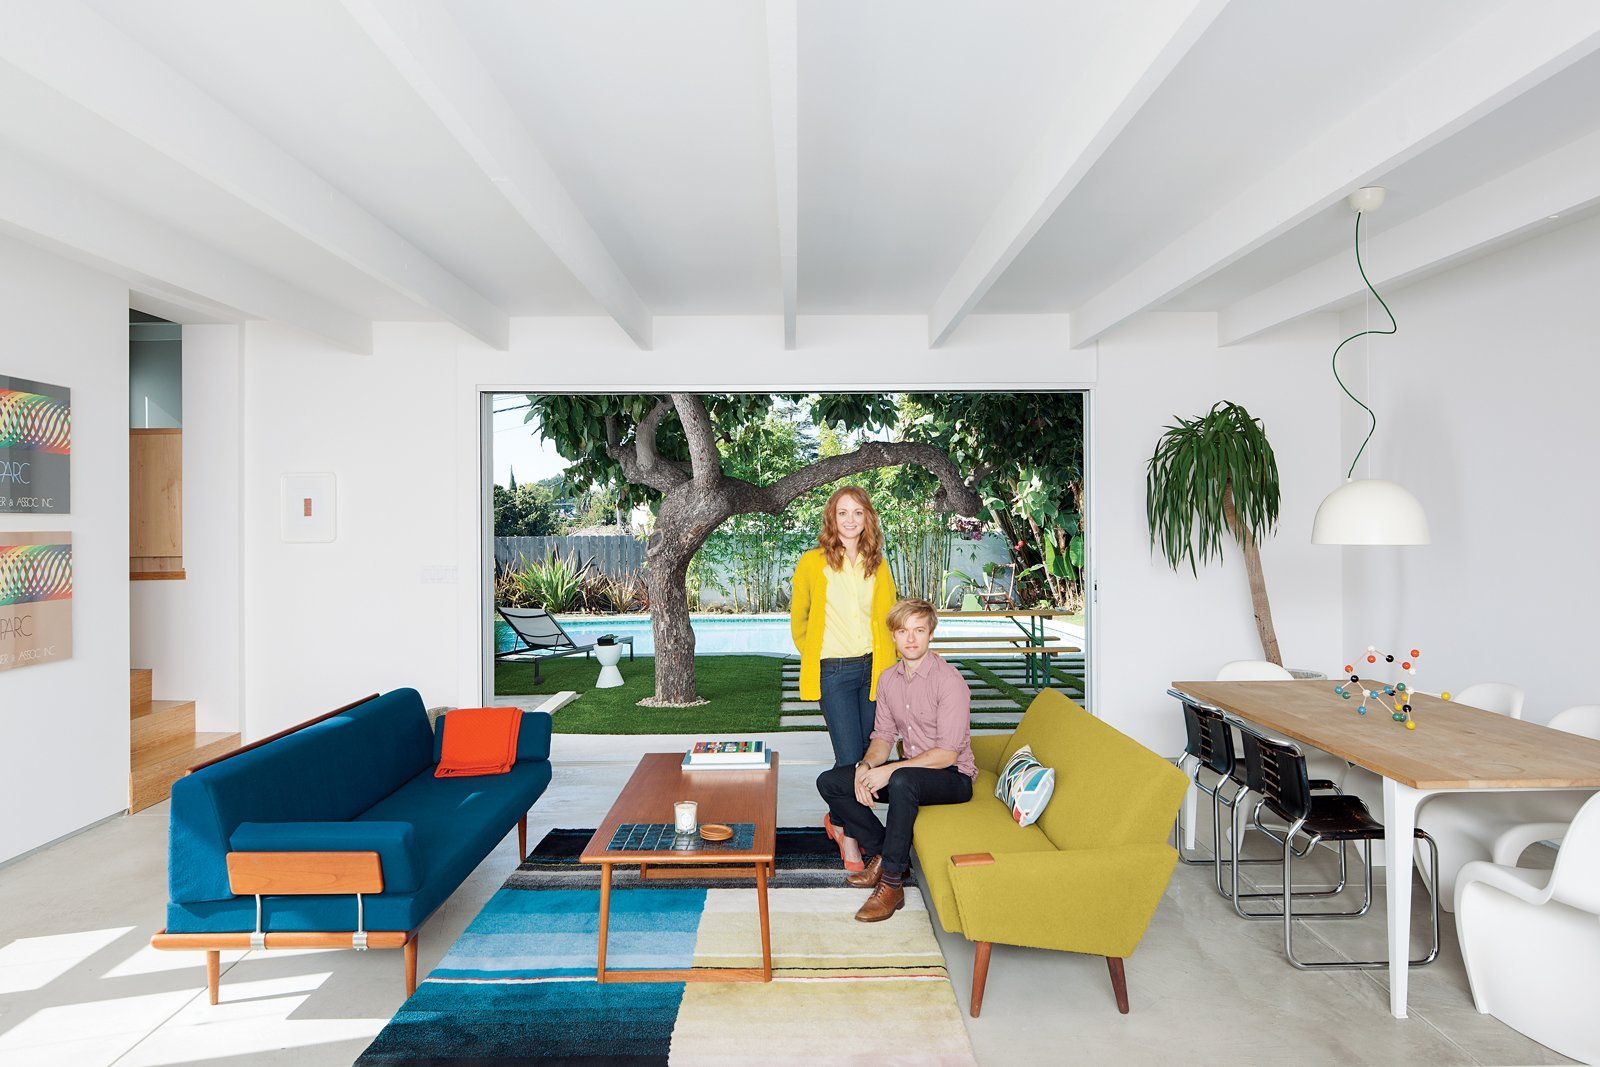 Living Room, Sofa, Coffee Tables, and Pendant Lighting Glee star Jayma Mays and actor Adam Campbell in the living room of their Los Angeles home.  Modern and Young: A Furniture-Filled Living Room in Los Feliz by Eujin Rhee